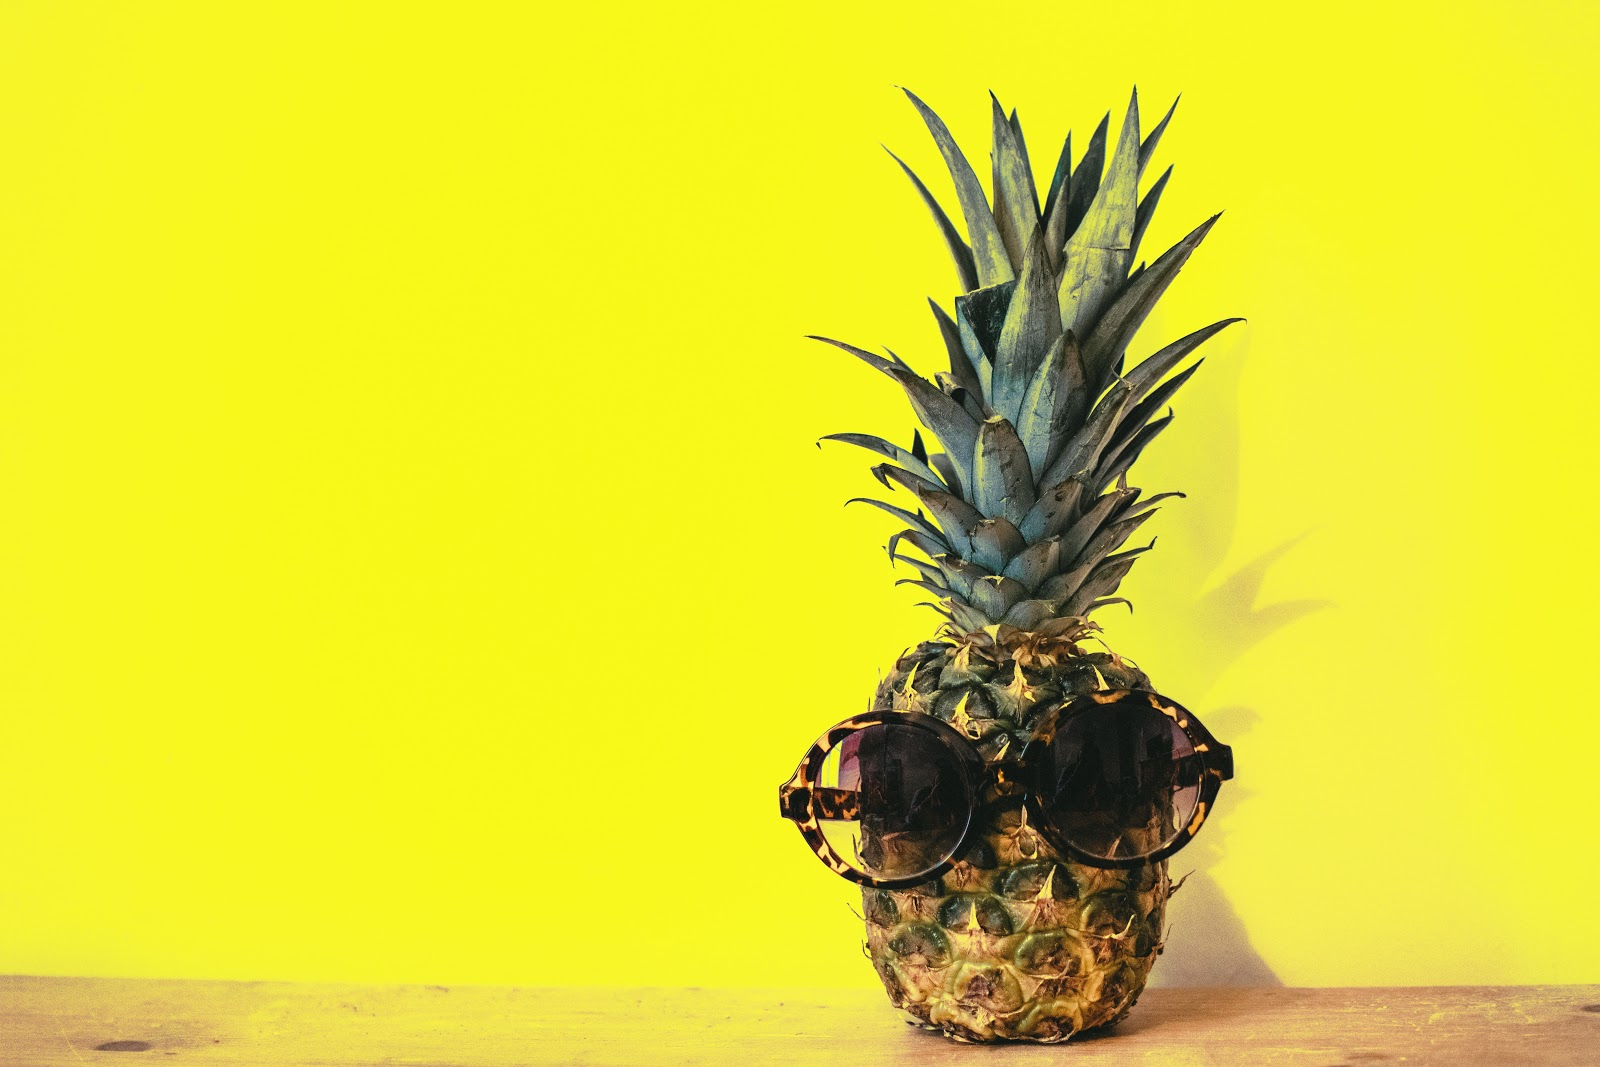 pineapple wearing sunglasses in front of a yellow background